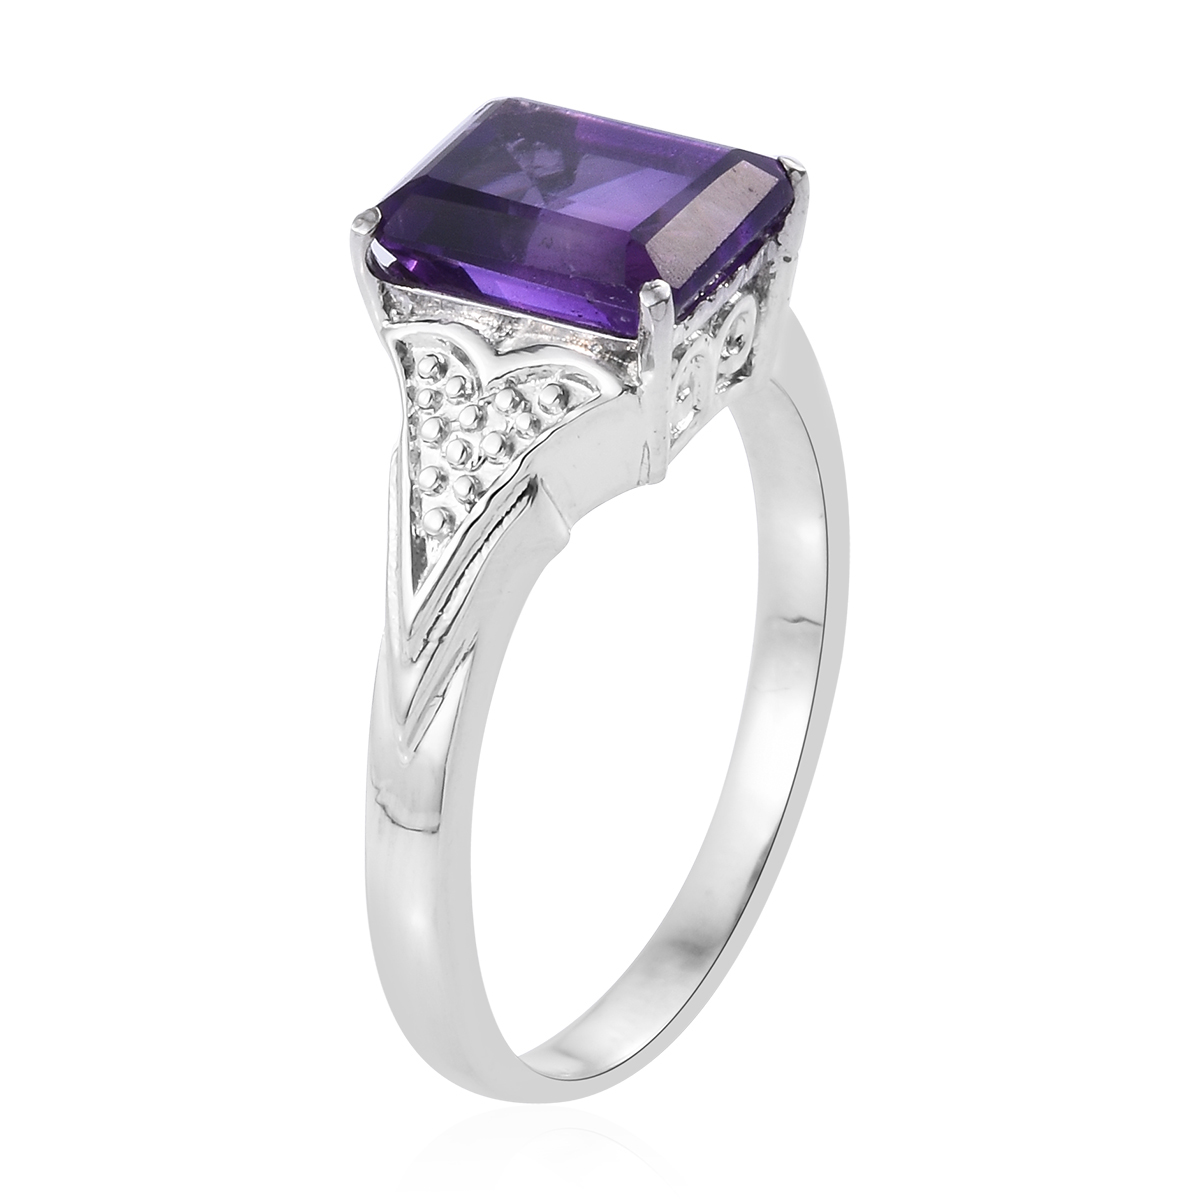 Shop LC Delivering Joy Solitaire Ring Stainless Steel Octagon Amethyst Gift Jewelry for Women Size 6 Cttw 2.6